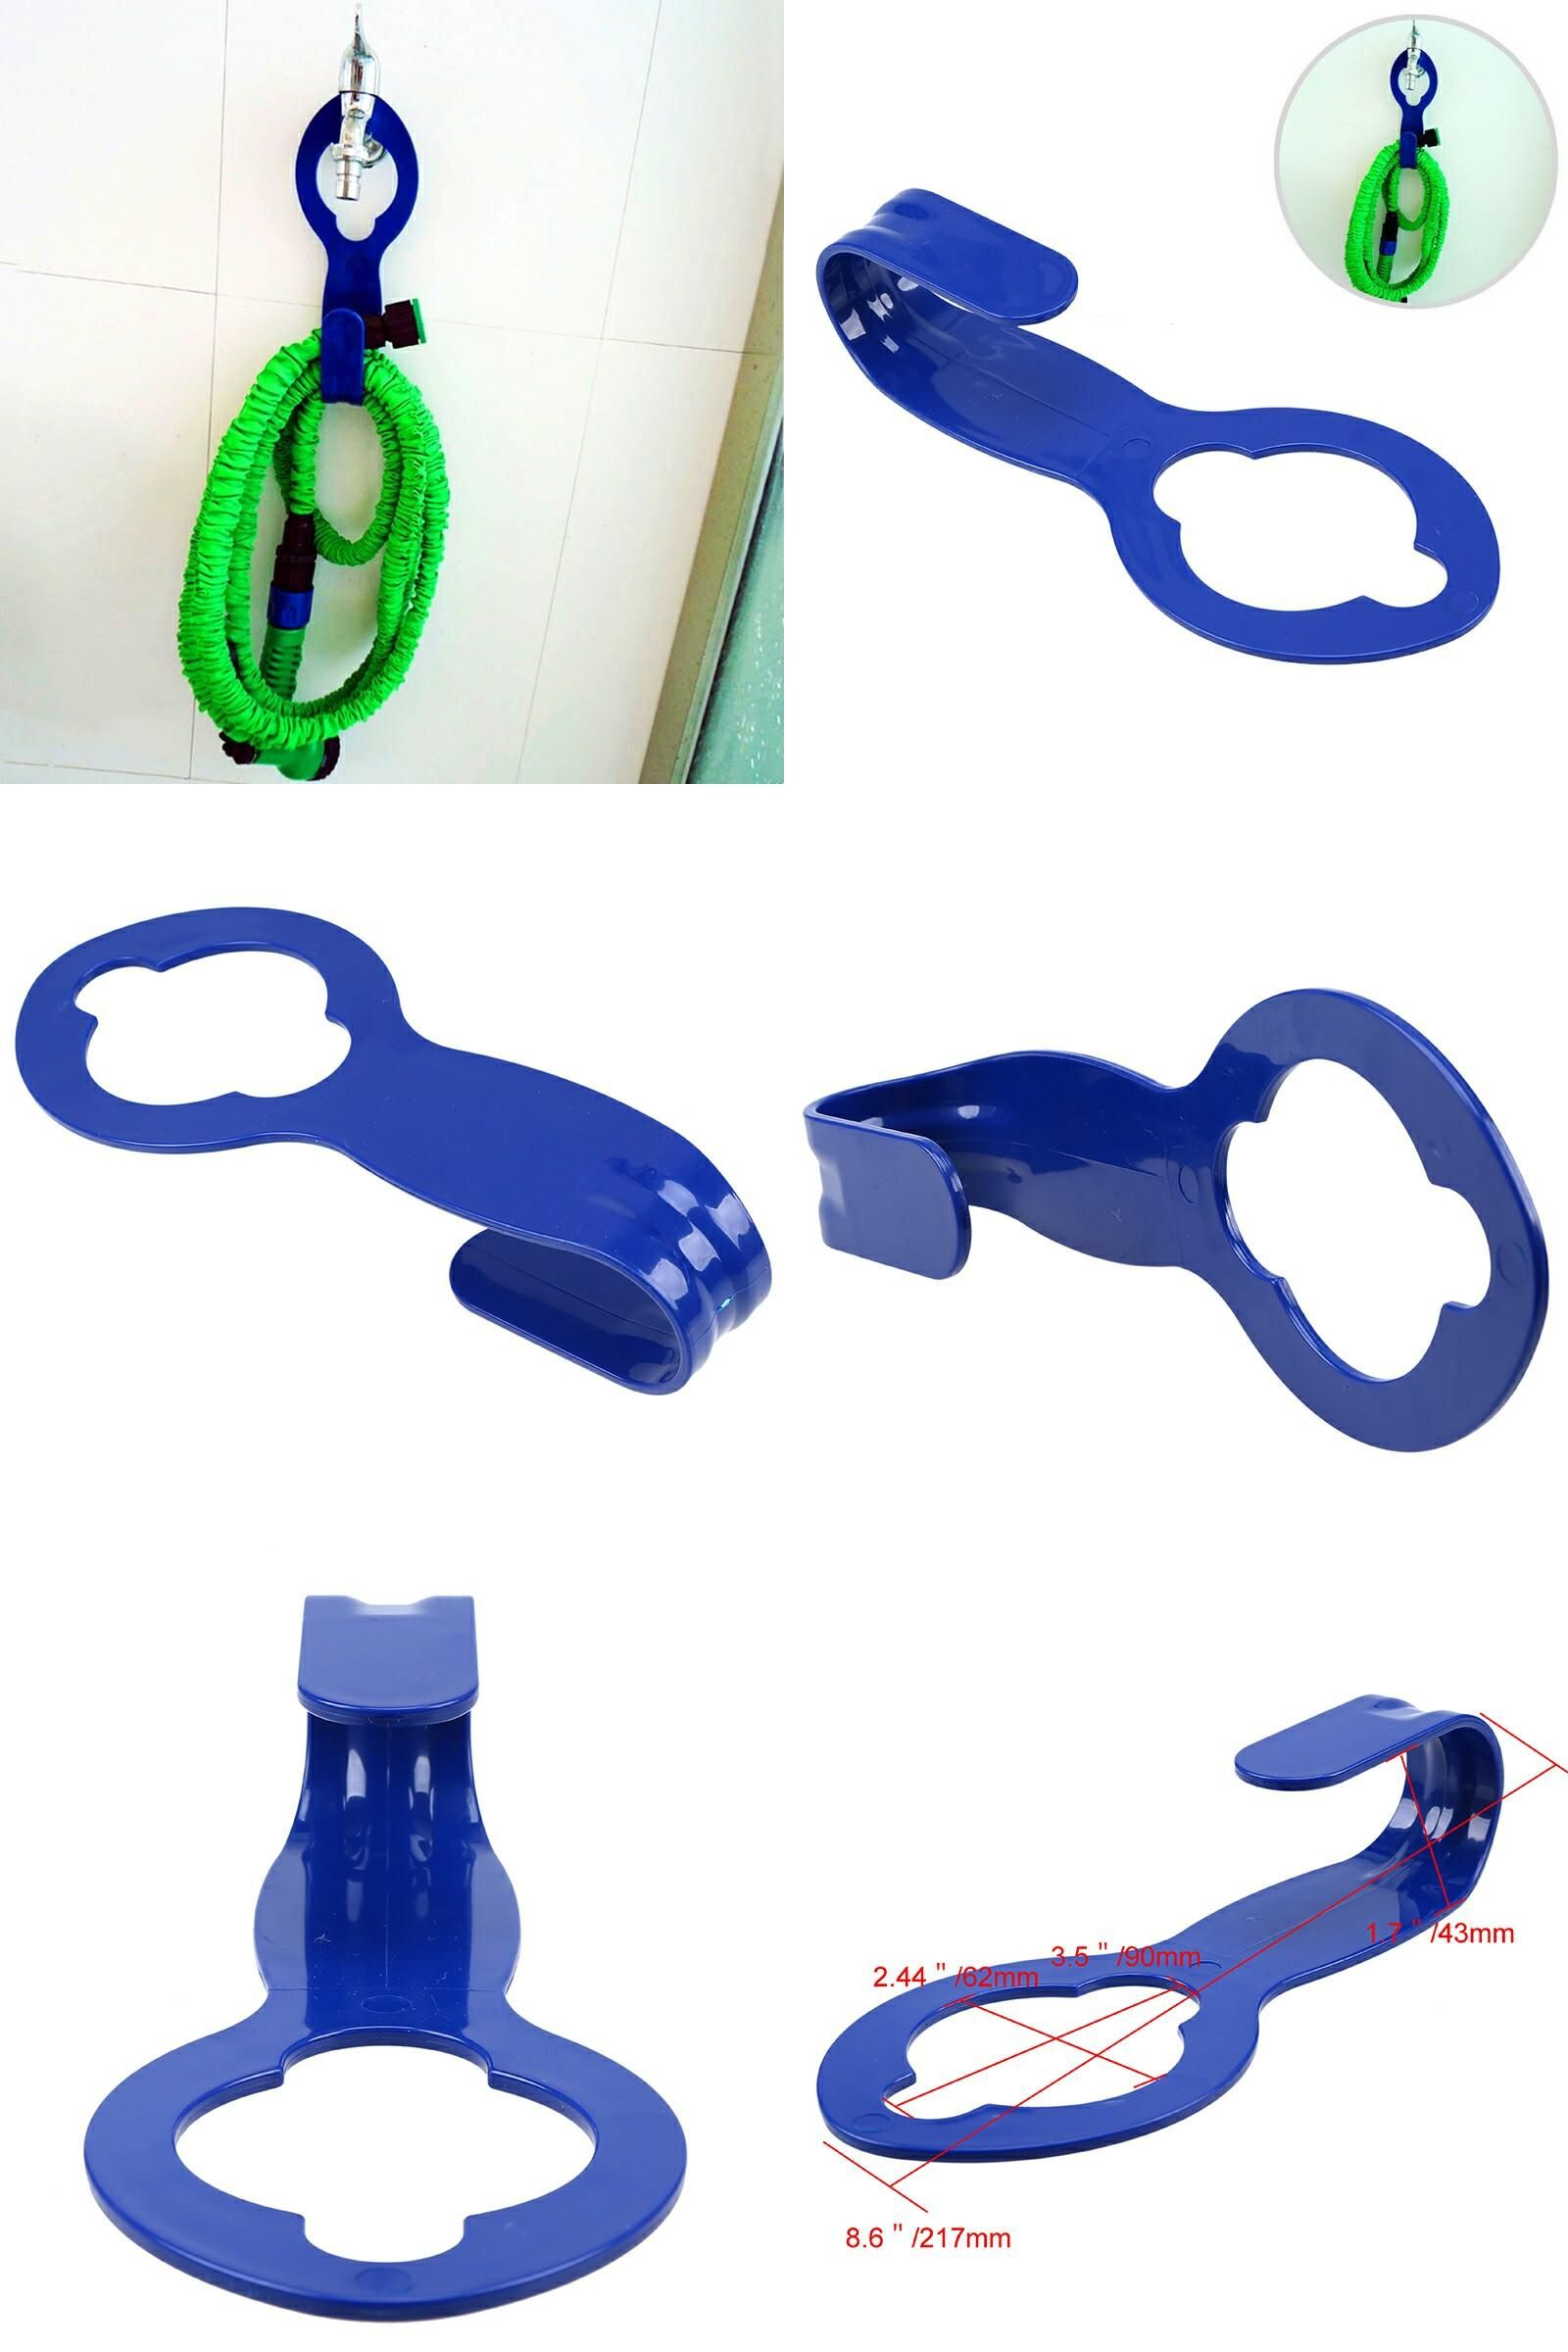 Visit to buy water hose holder 217mm decorative garden hose visit to buy water hose holder 217mm decorative garden hose holder plastic hose pipe amipublicfo Image collections